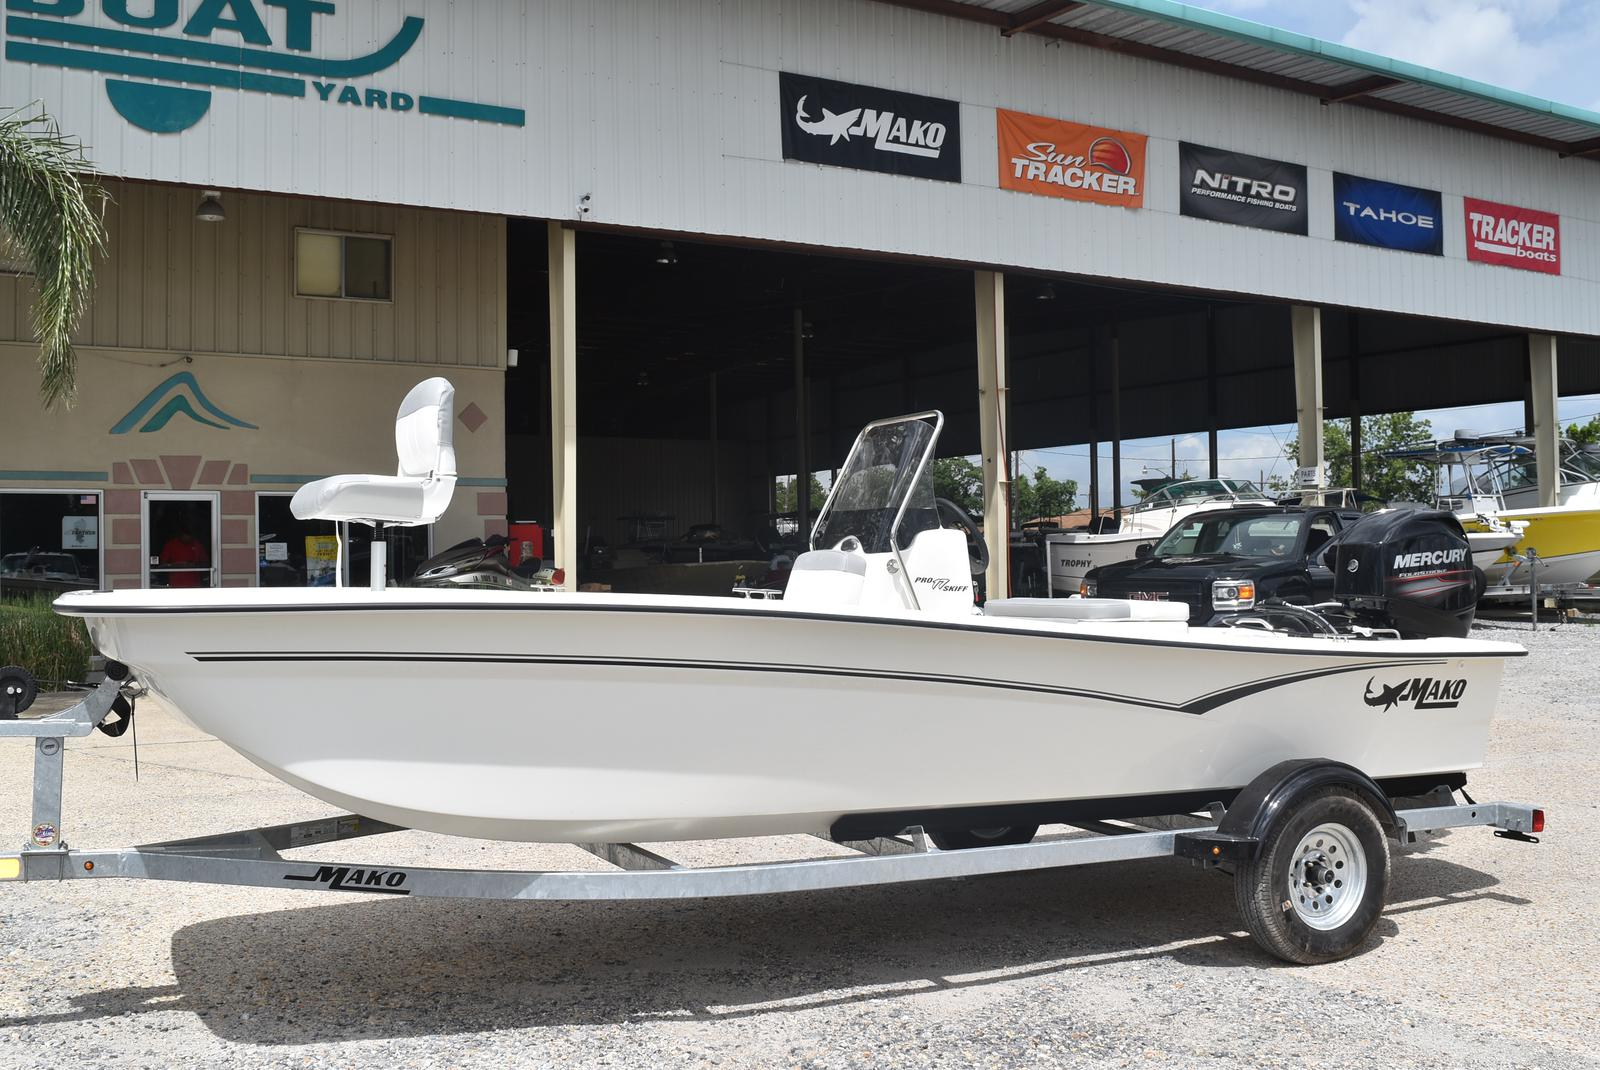 2020 Mako boat for sale, model of the boat is Pro Skiff 17, 75 ELPT & Image # 108 of 702